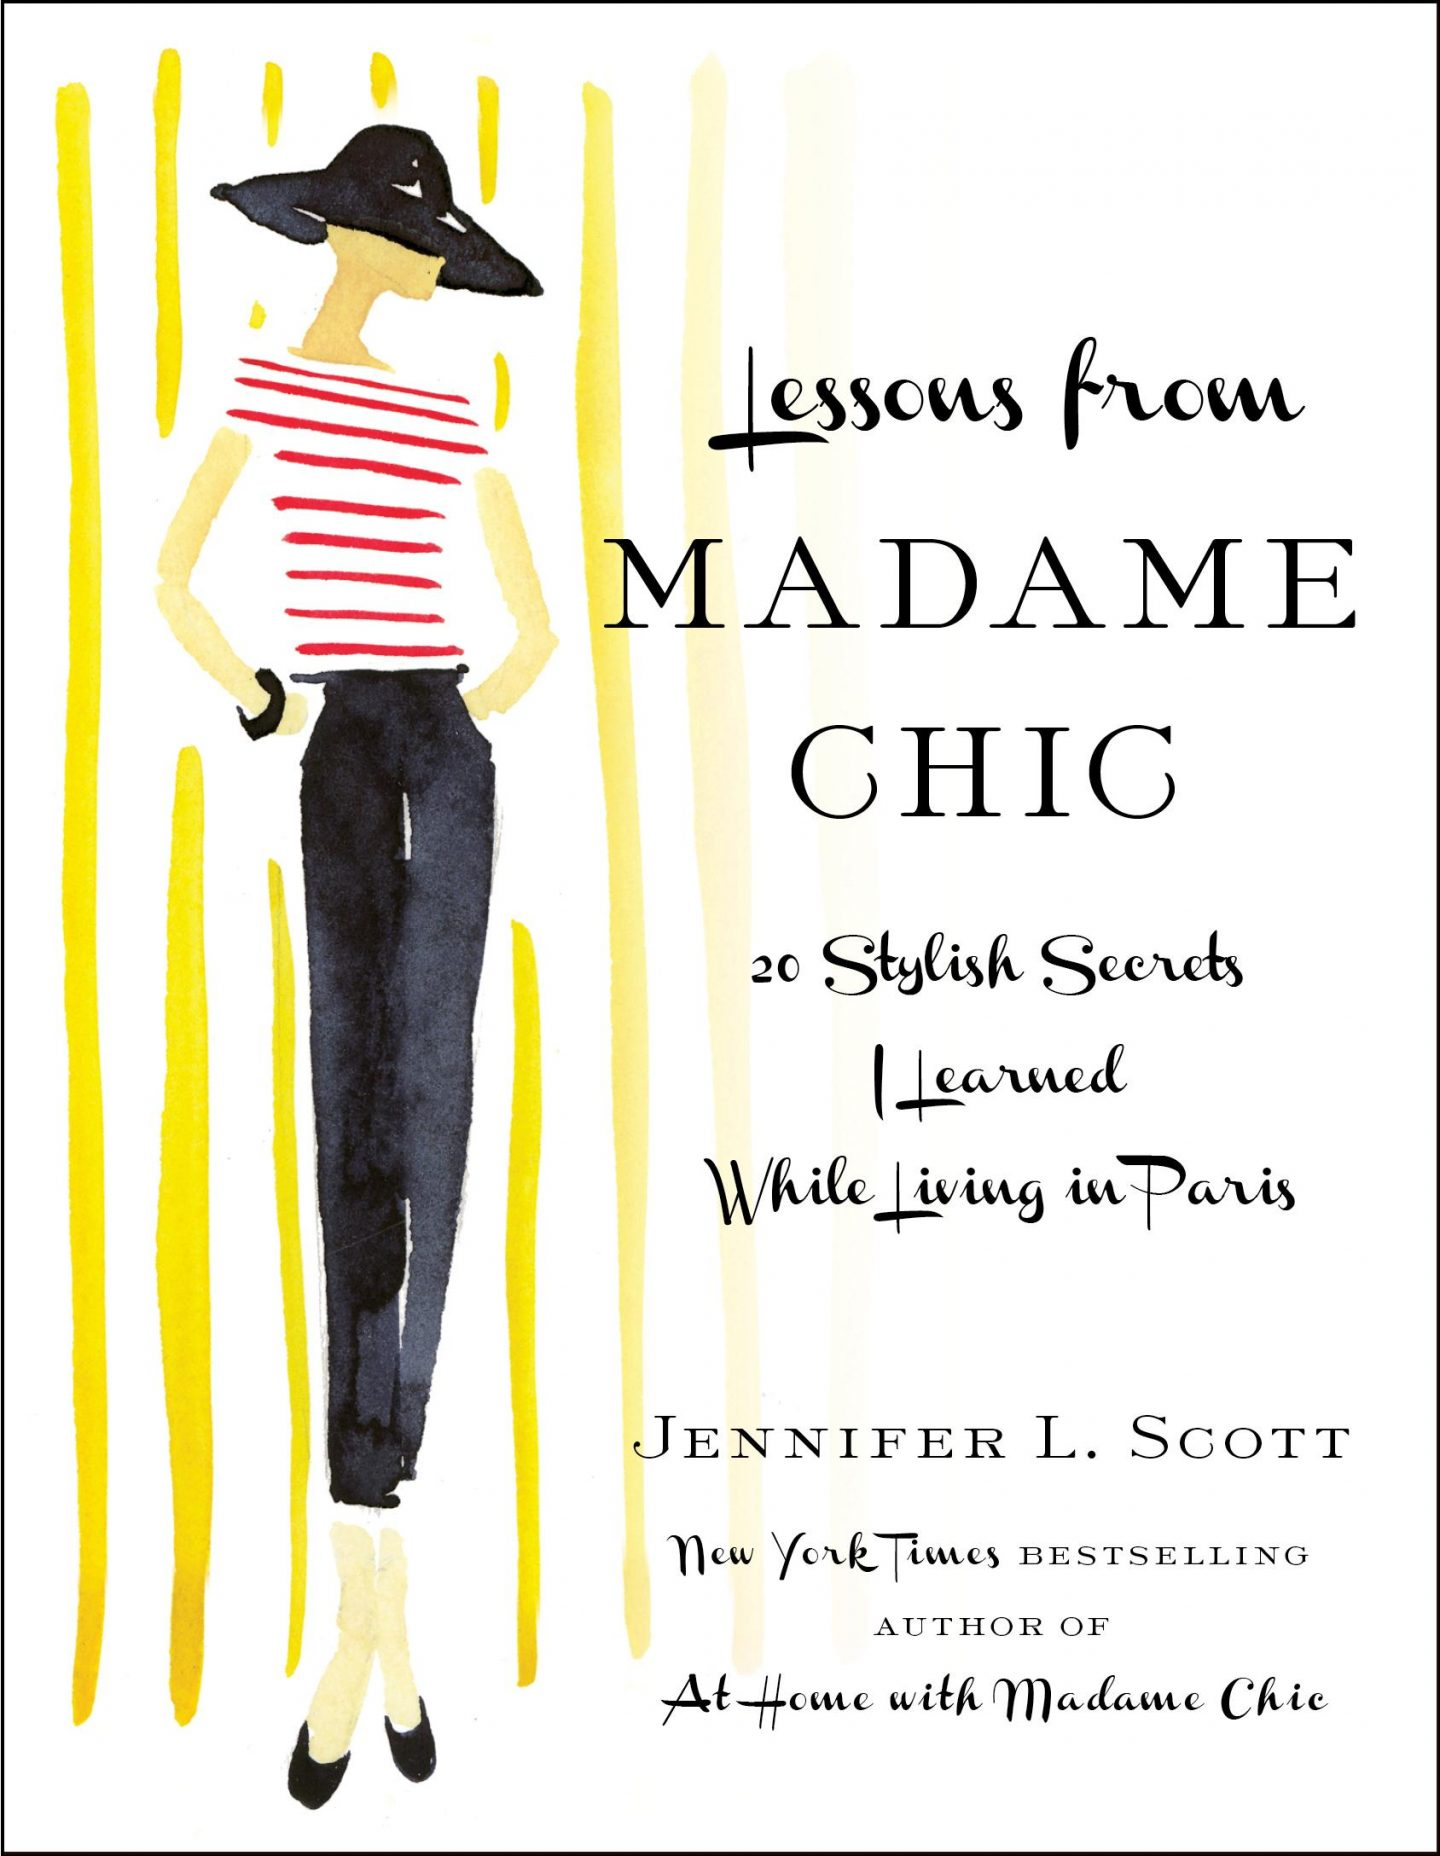 Bonjour! Interview with Jennifer Scott, author of Madame Chic